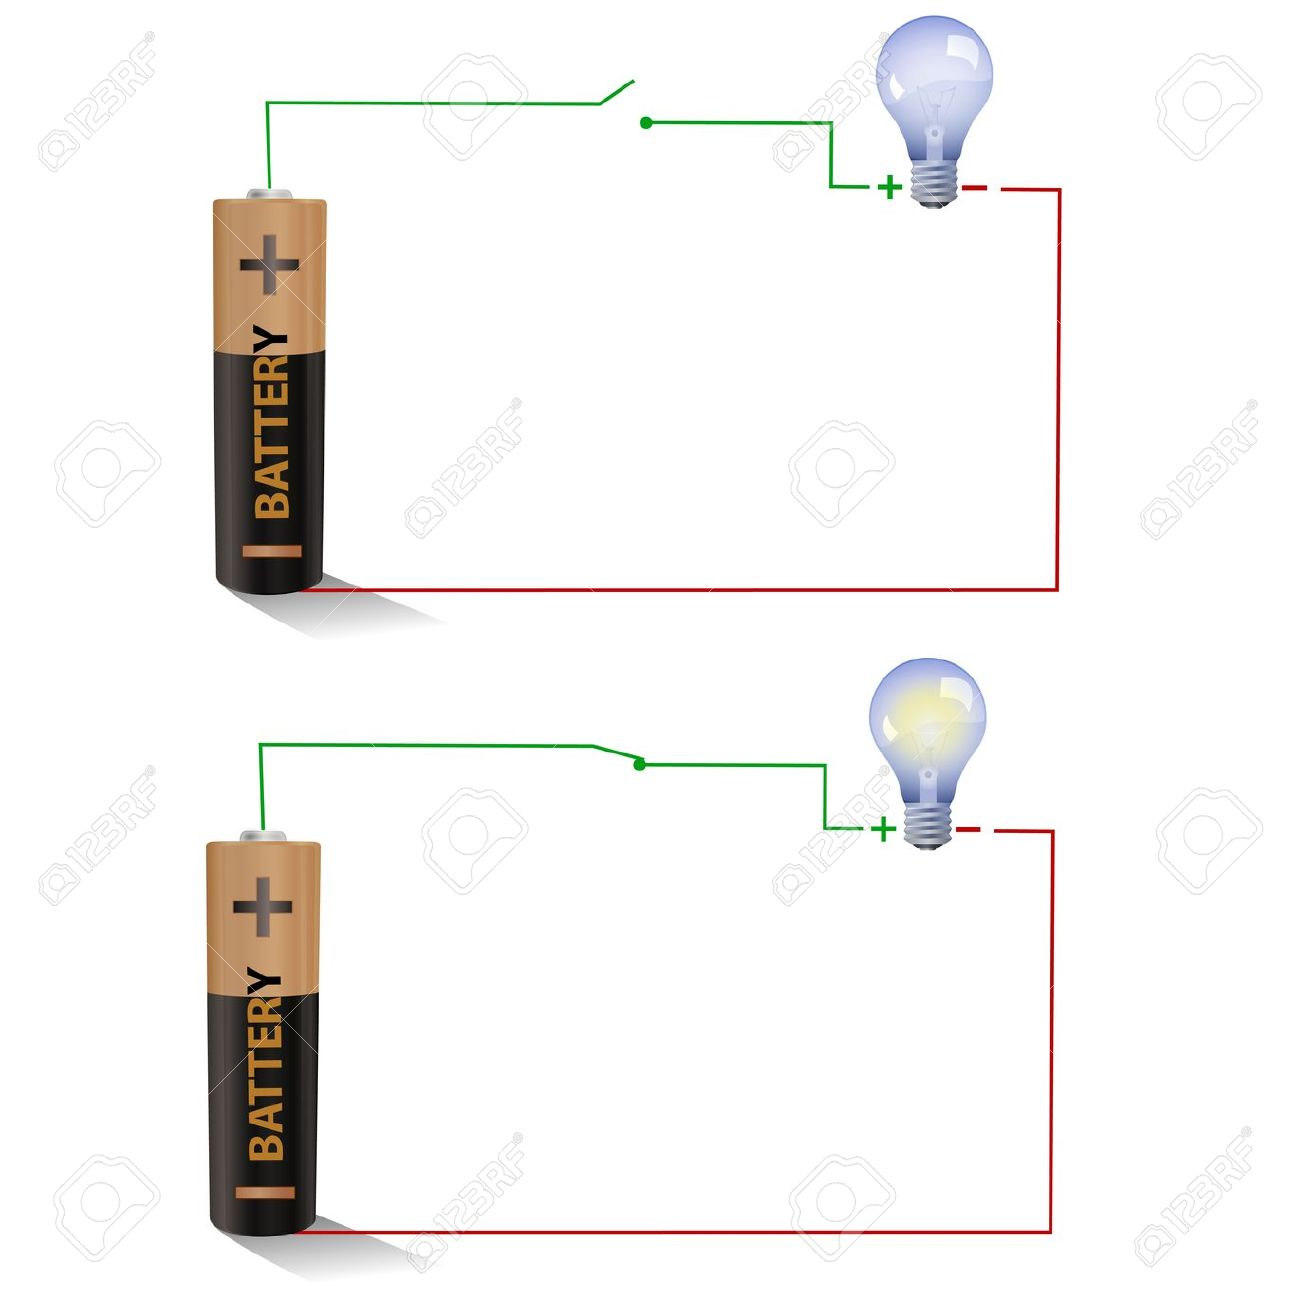 hight resolution of electric circuit showing open and closed switches using a light figure shows a simple circuit diagram with a battery an open switch